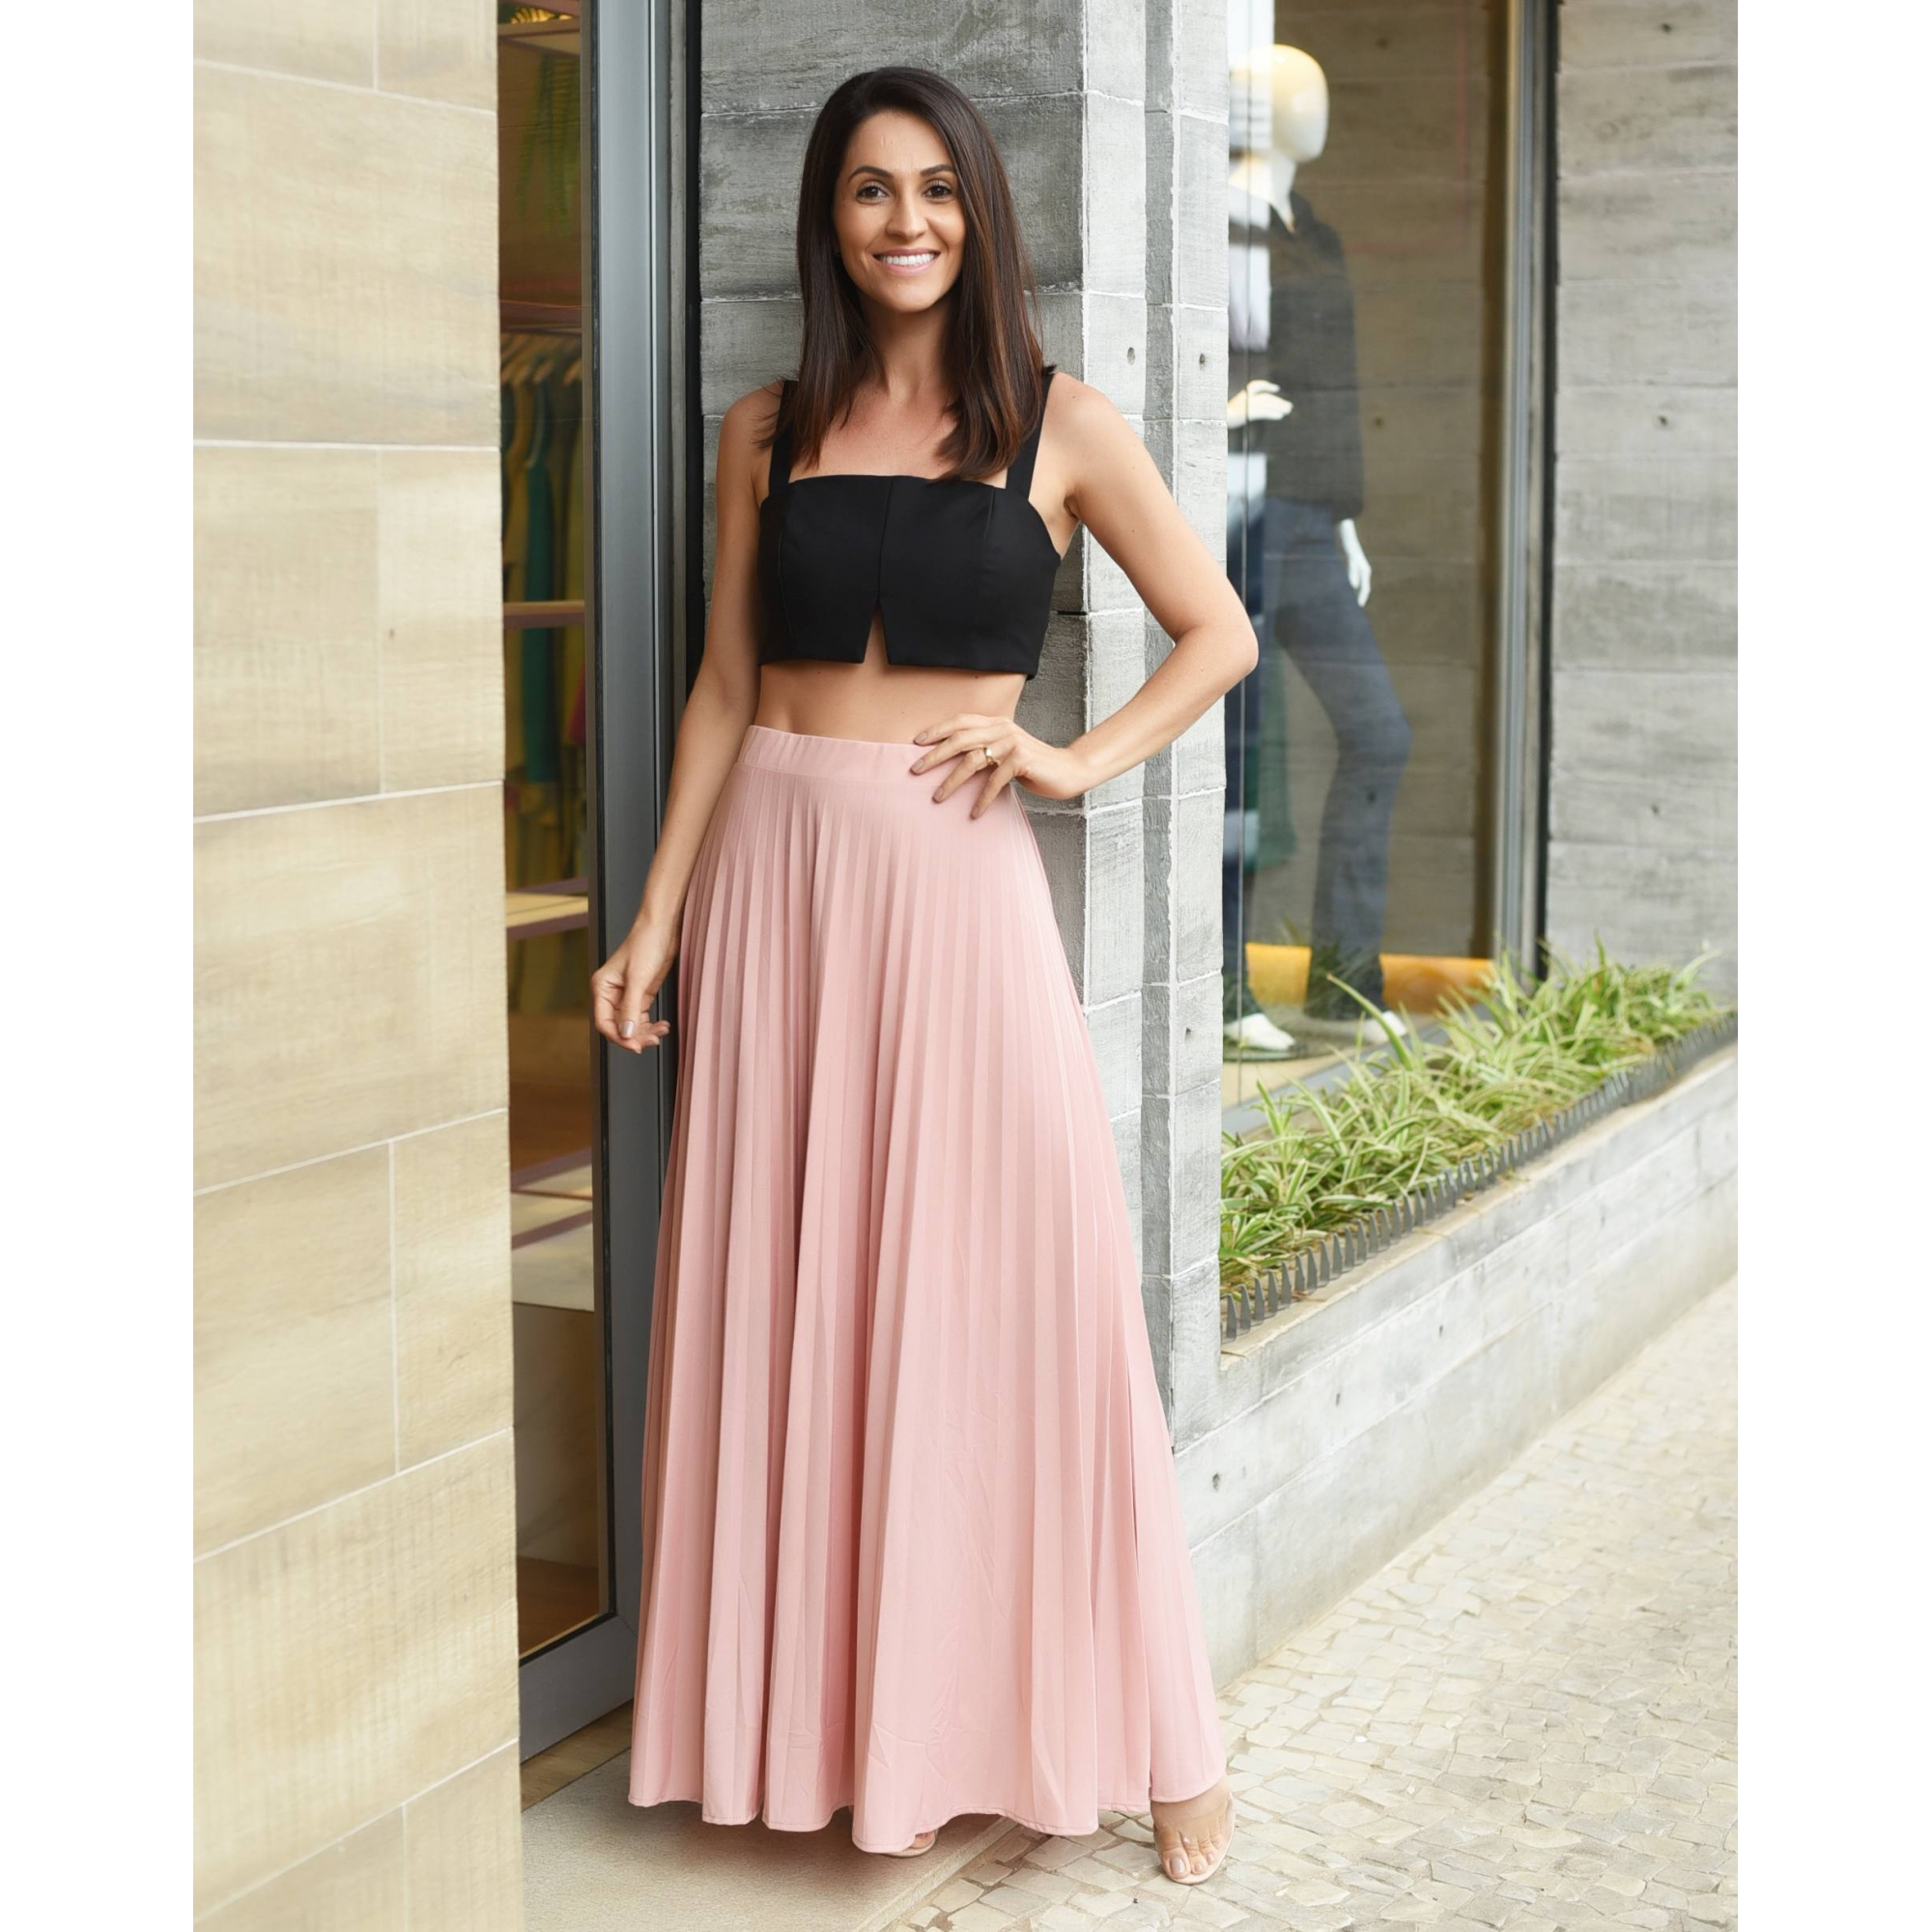 TOP CROPPED ALLURE - CORES